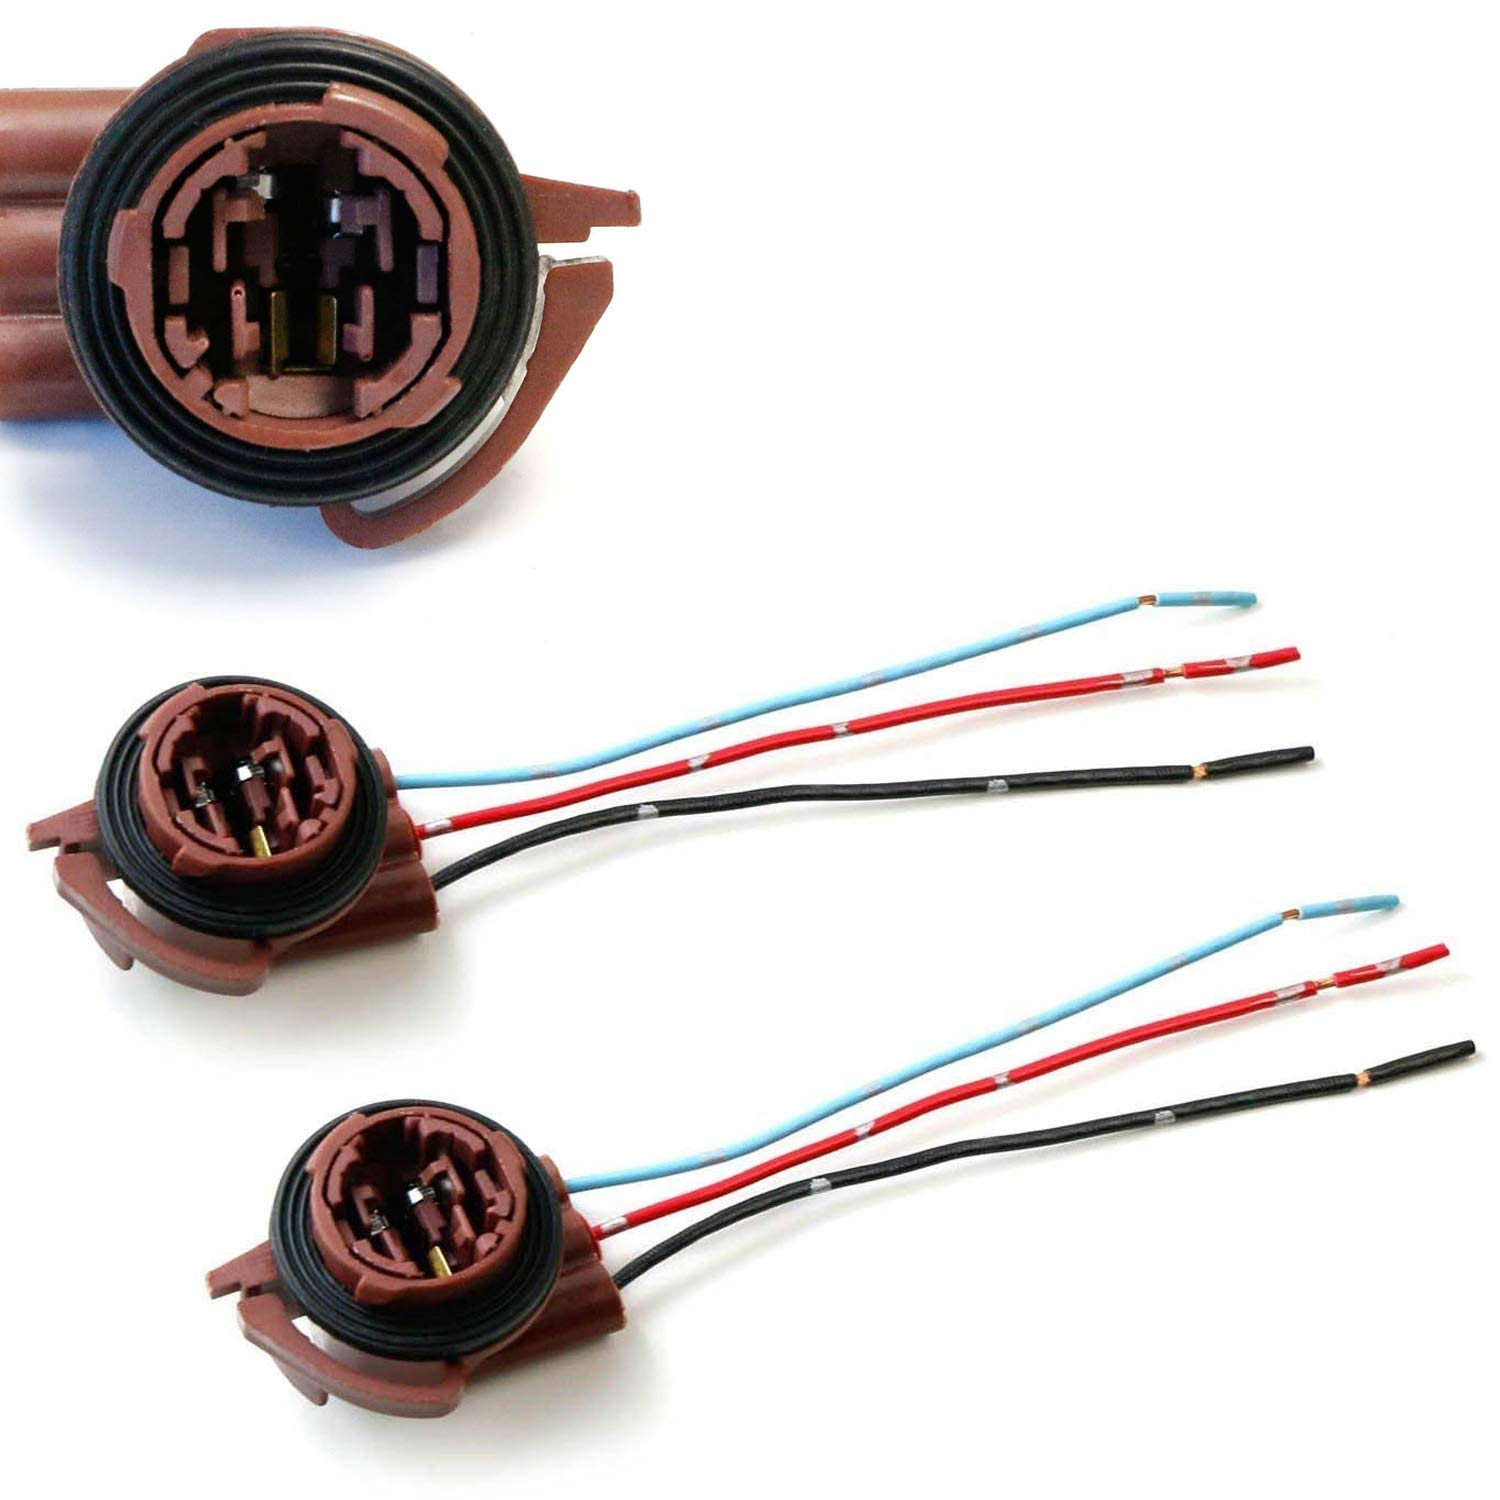 Ijdmtoy 2 3156 3157 Pre Wired Harness Sockets For 350z Headlight Wiring Wire Repair Replacement Install Led Bulbs Turn Signal Lights Drl Lamps Or Brake Tail